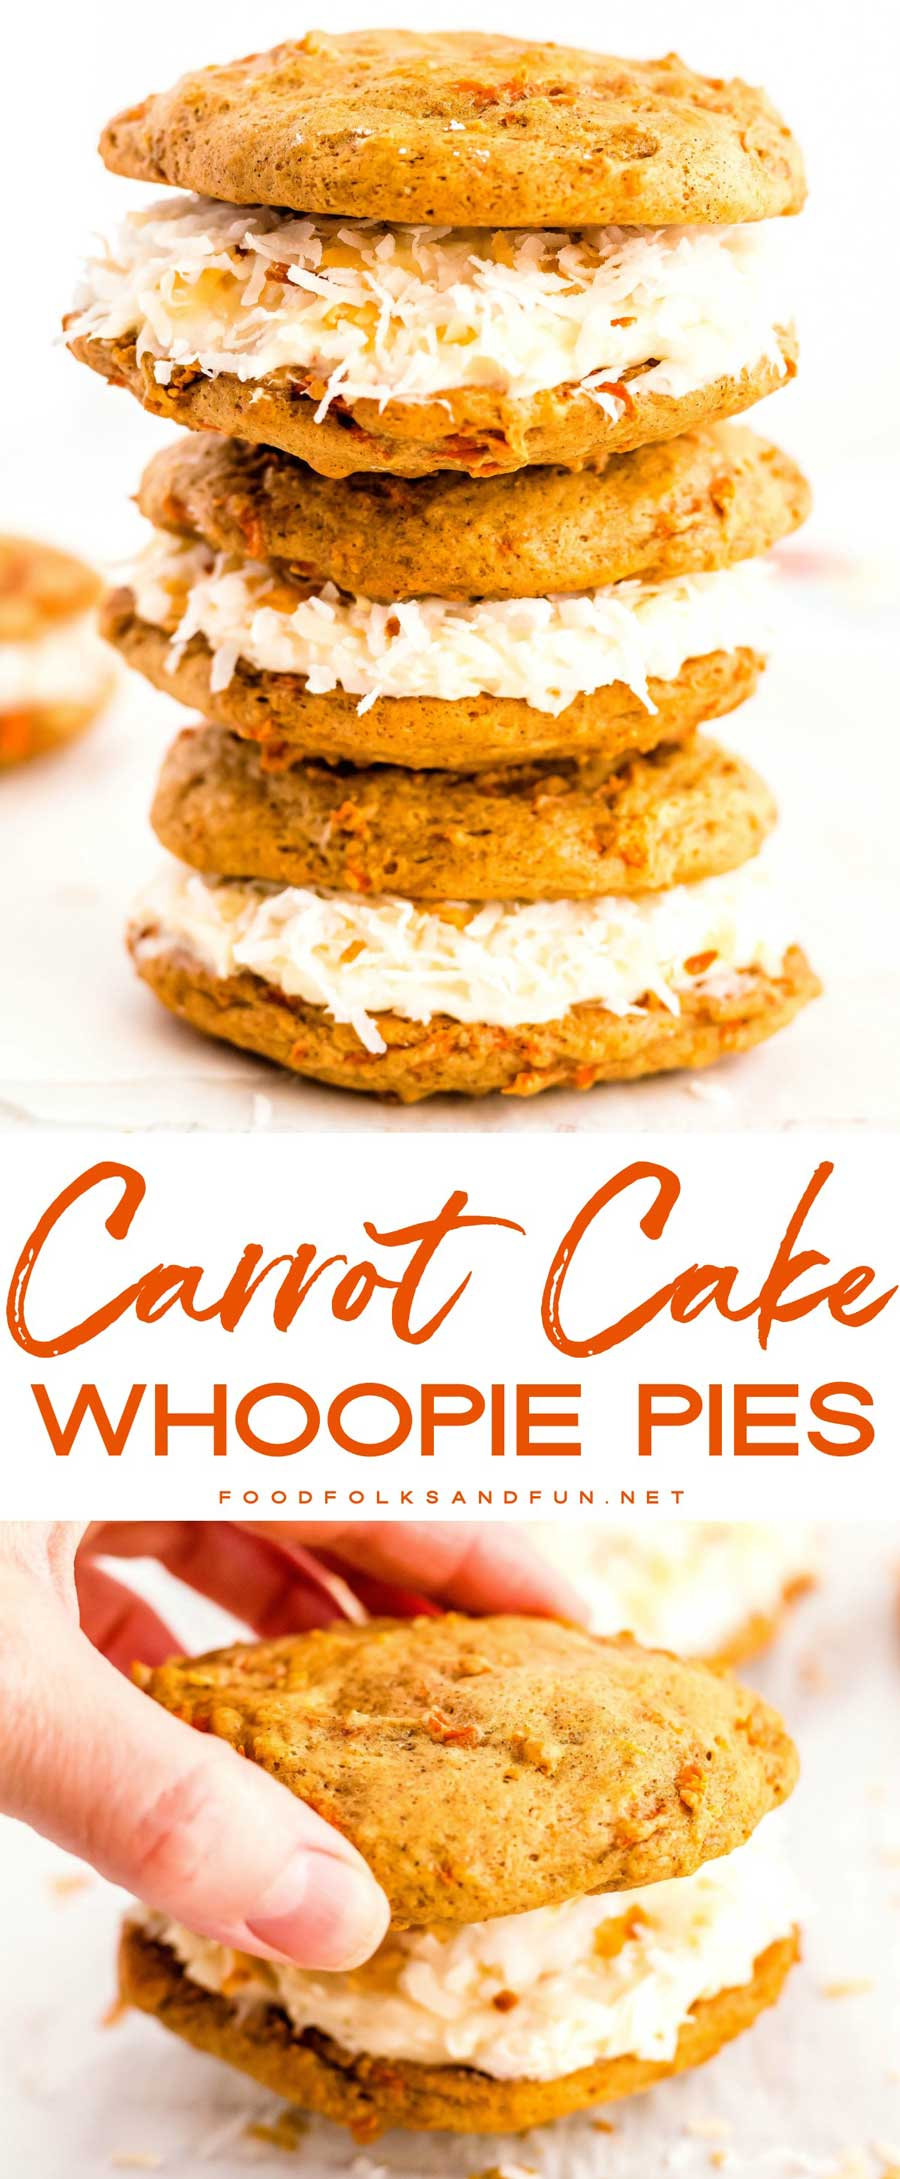 This Carrot Cake Whoopie Pies recipe is the perfect dessert for spring. It's everything you love about carrot cake but more compact. It's a little bit cookie, it's a little bit cake, and it's a whole lot of deliciousness! #dessert #dessertrecipe #Easter #EasterRecipe #Spring #SpringRecipe #foodfolksandfun via @foodfolksandfun